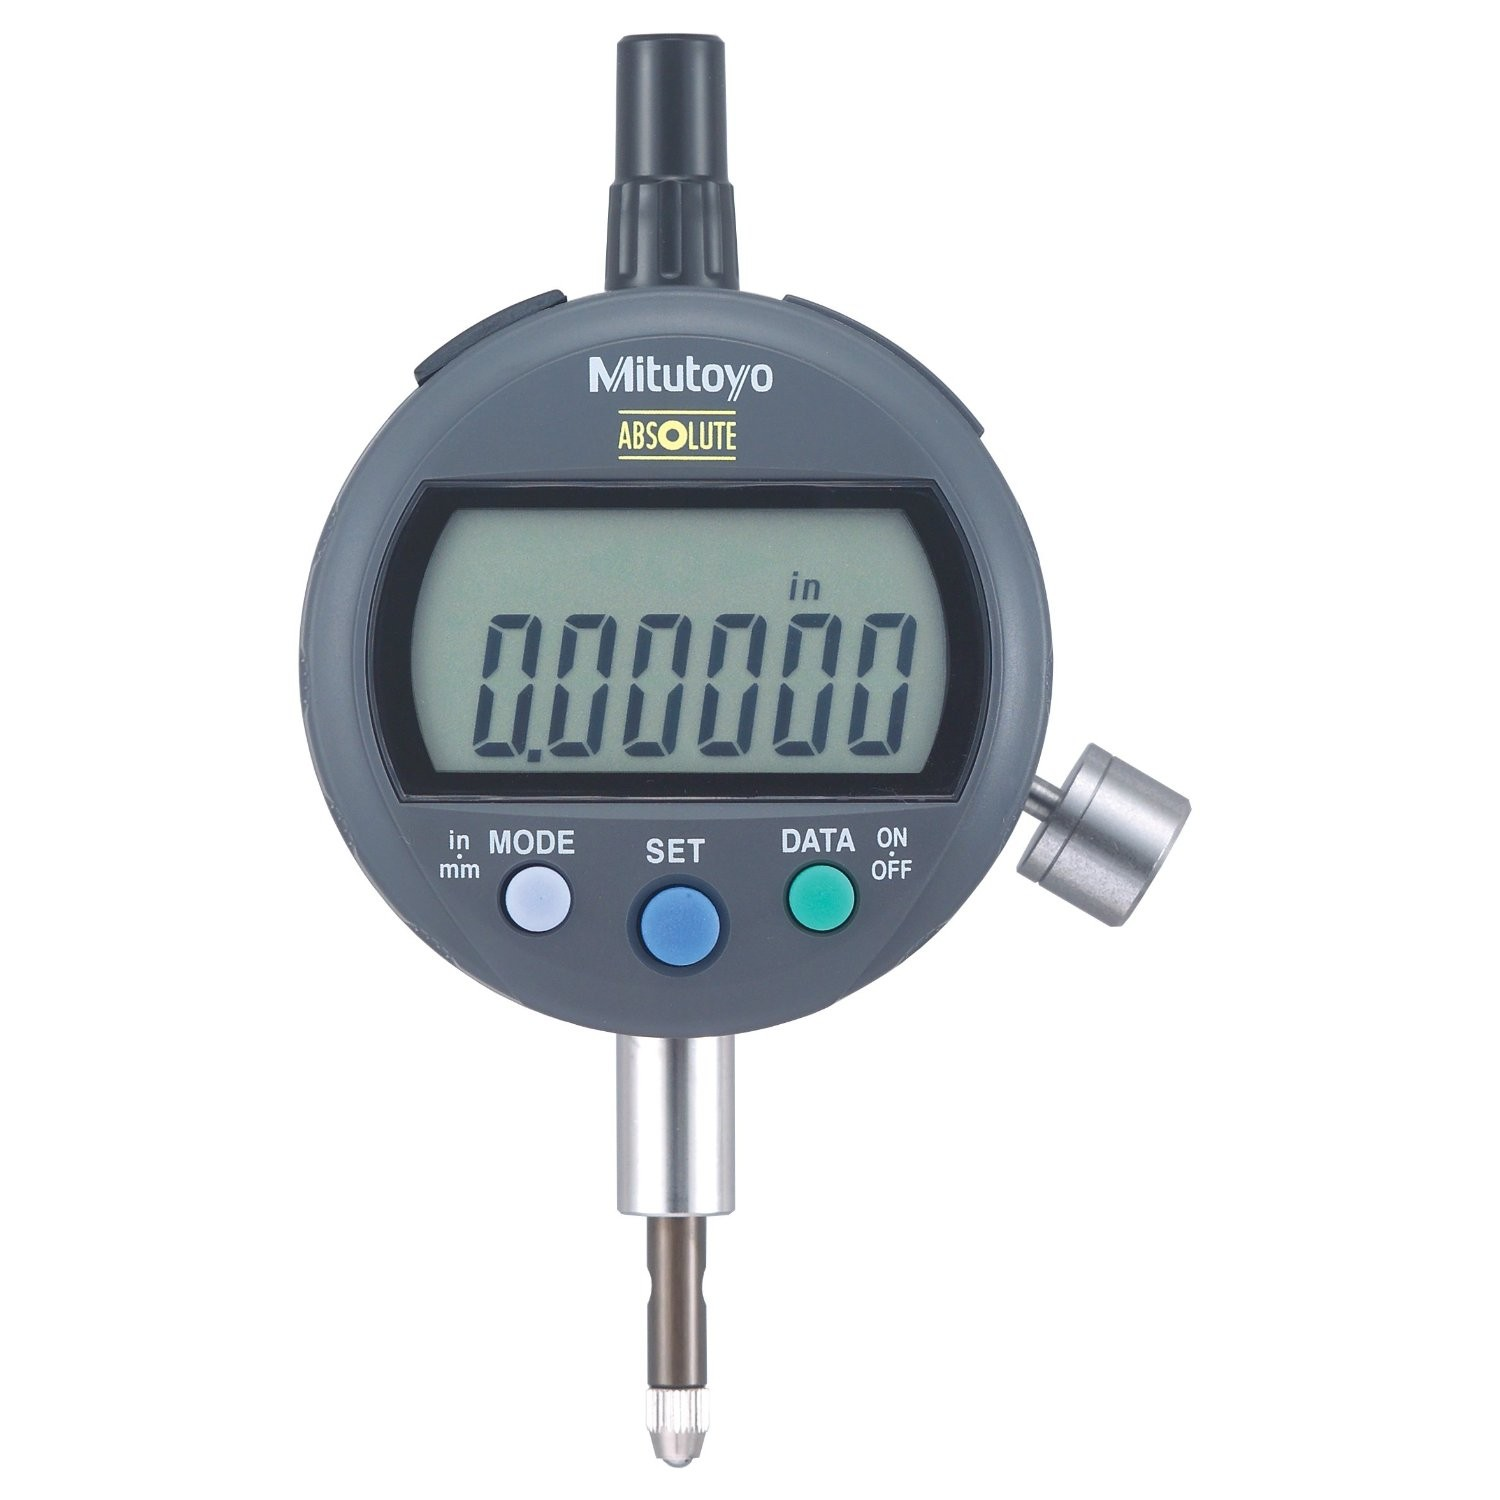 Mitutoyo 543-396 ABSOLUTE Digimatic Indicator with SPC output, ID-C